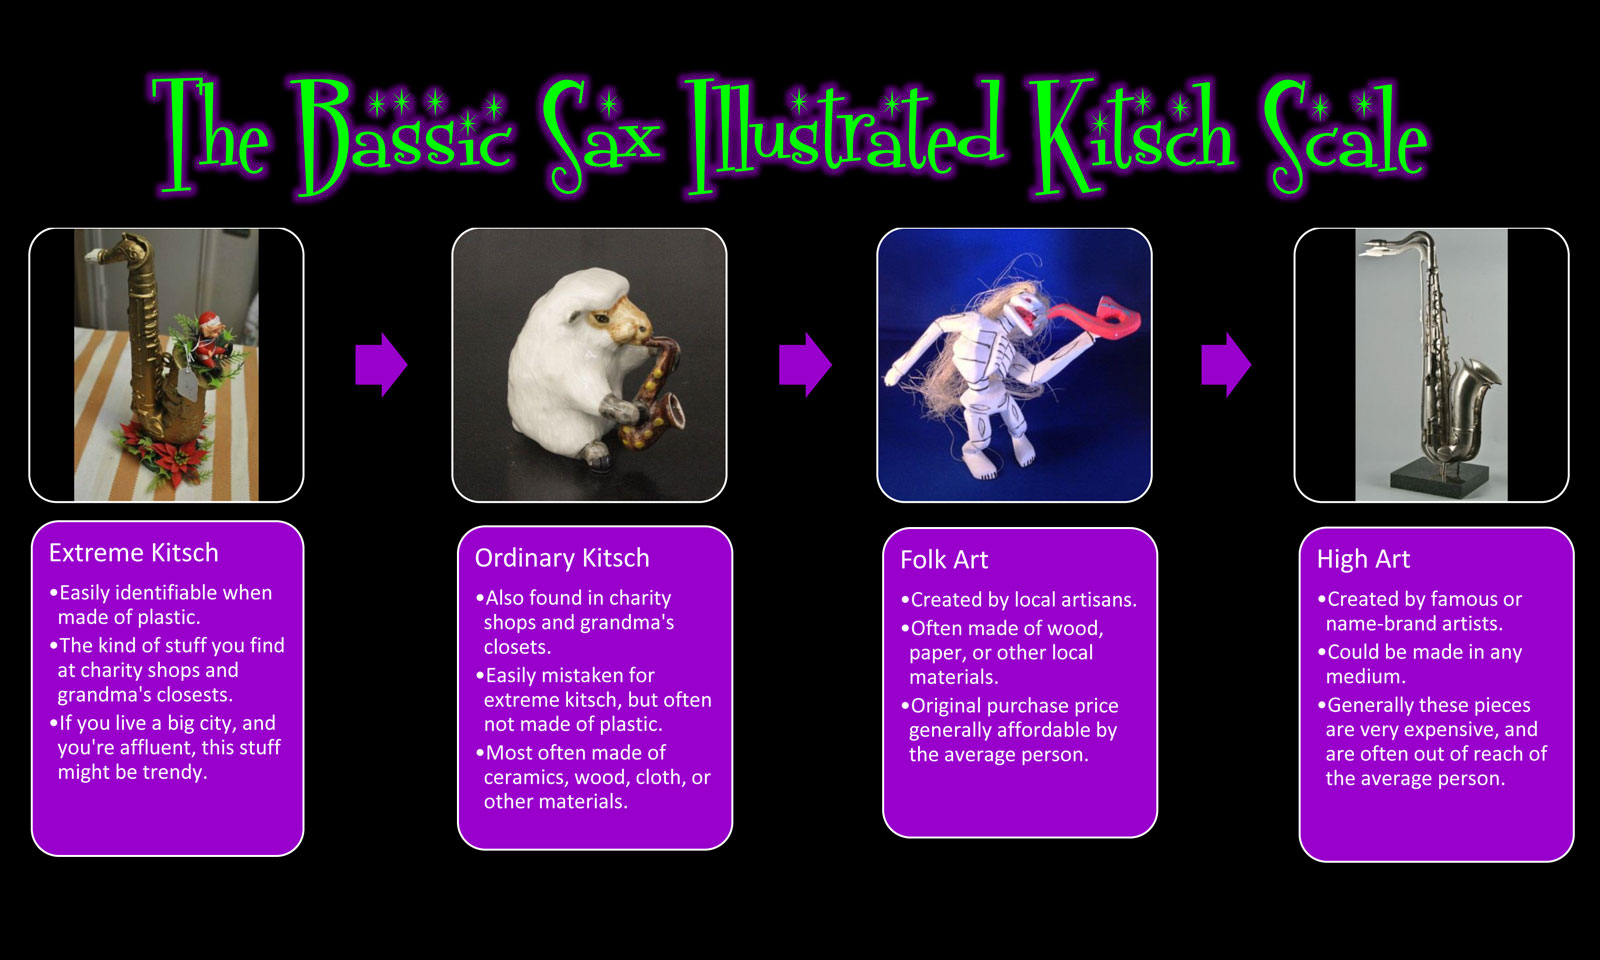 kitsch, kitsch scale, The Bassic Sax Illustrated Kitsch Scale